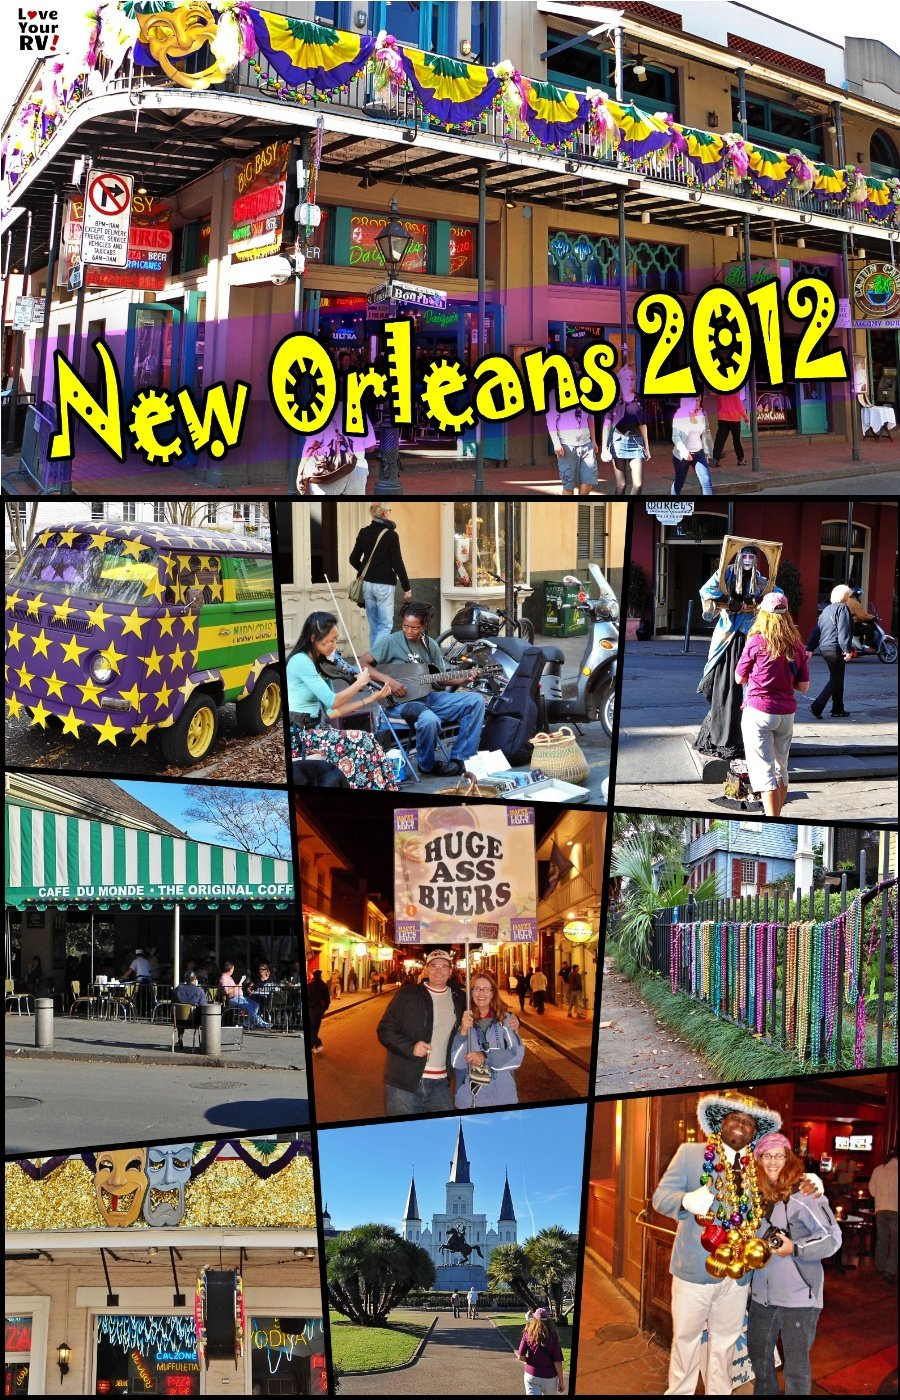 Visiting New Orleans in February 2012 LYRV Video Throwback Series